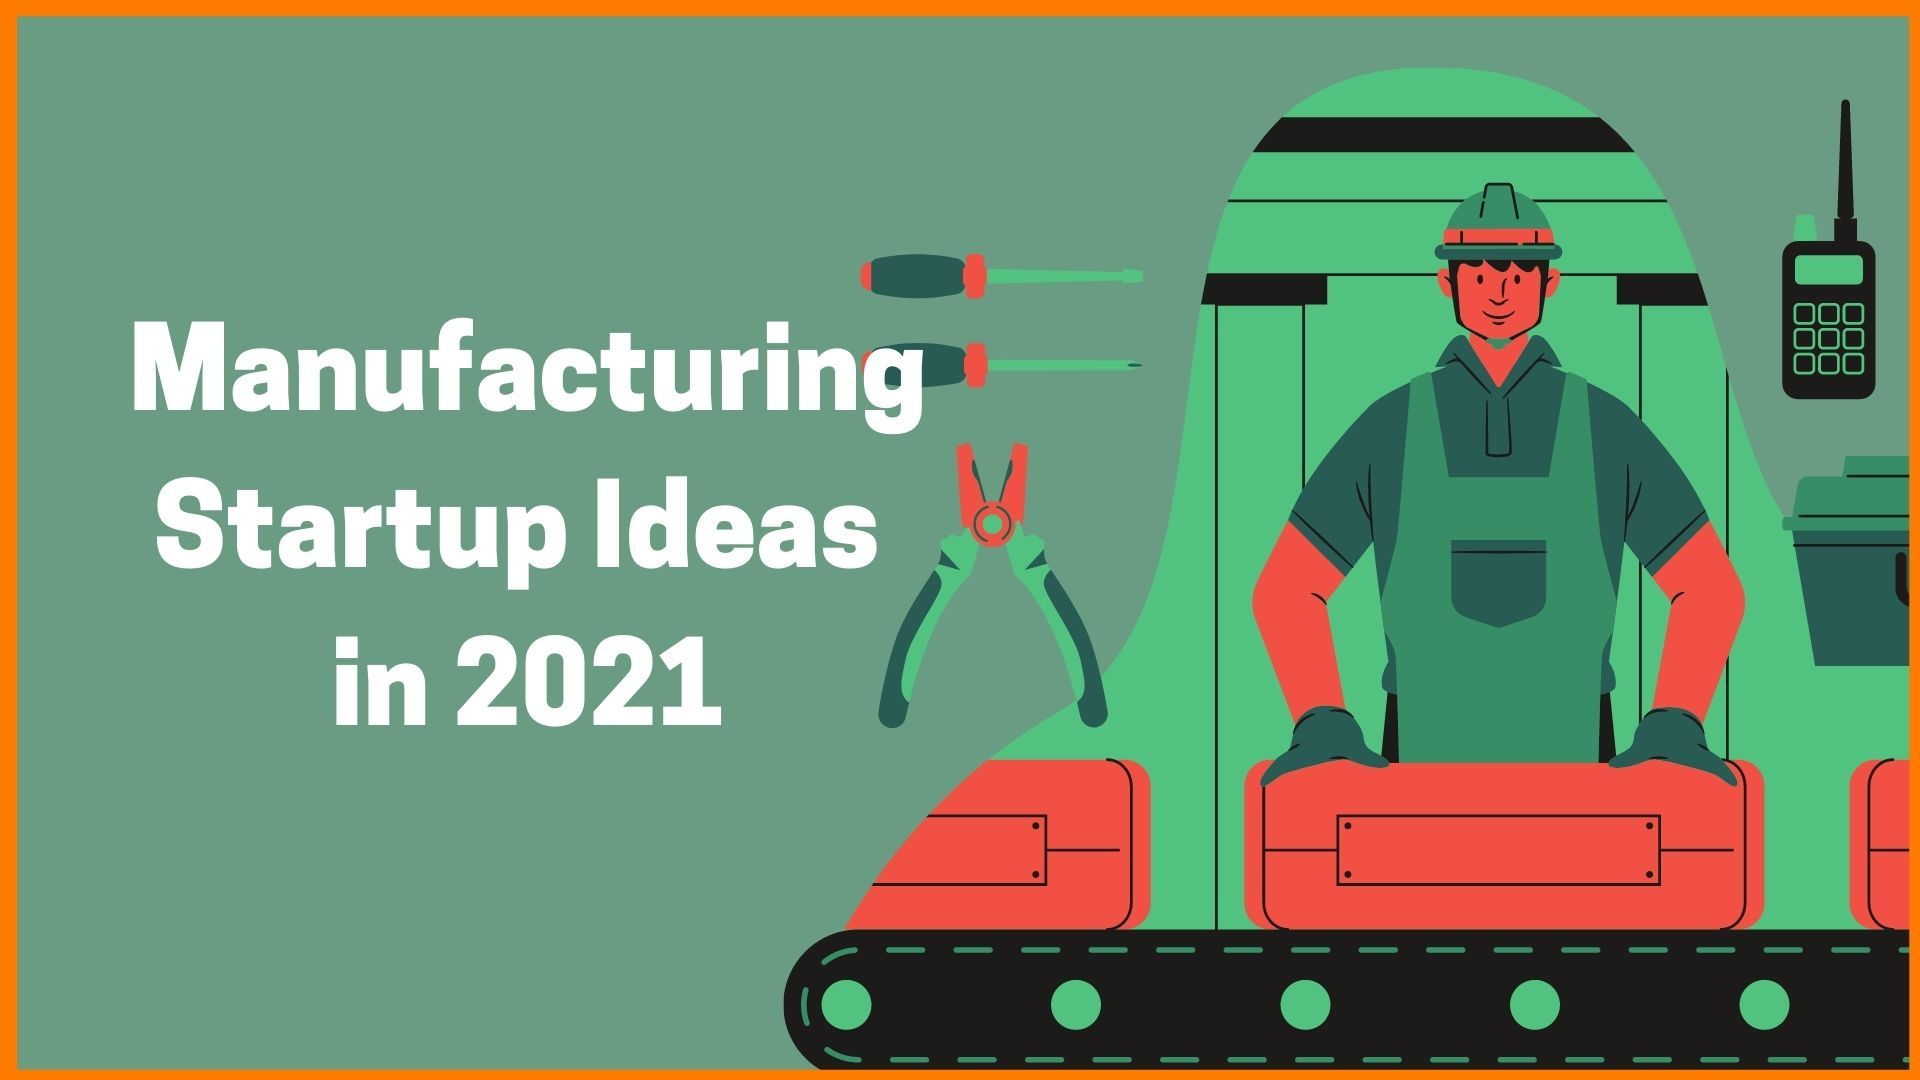 Top 15 Manufacturing Startup Ideas To Start In 2021